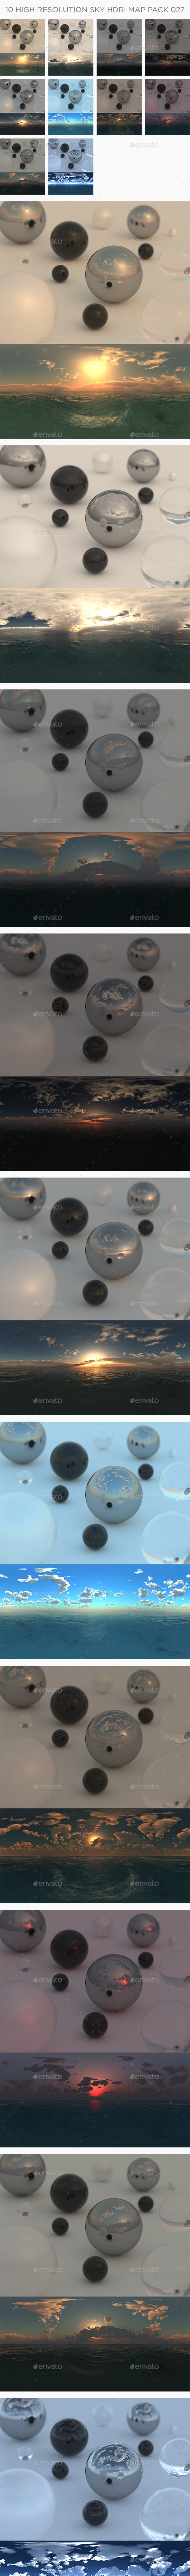 10 High Resolution Sky HDRi Maps Pack 027 - 3DOcean Item for Sale